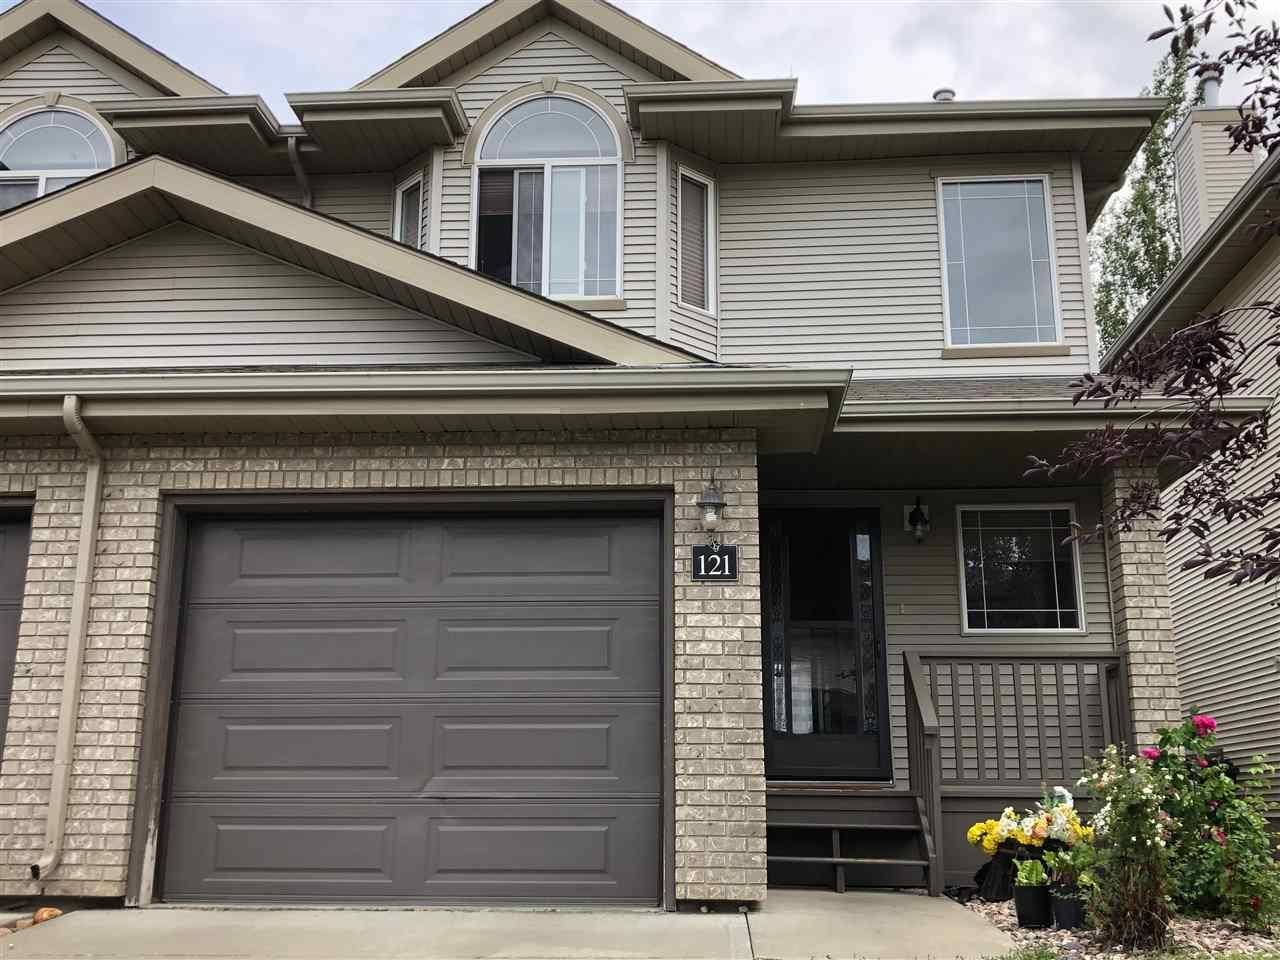 Townhouse for sale at 155 Crocus Cres Unit 121 Sherwood Park Alberta - MLS: E4182021